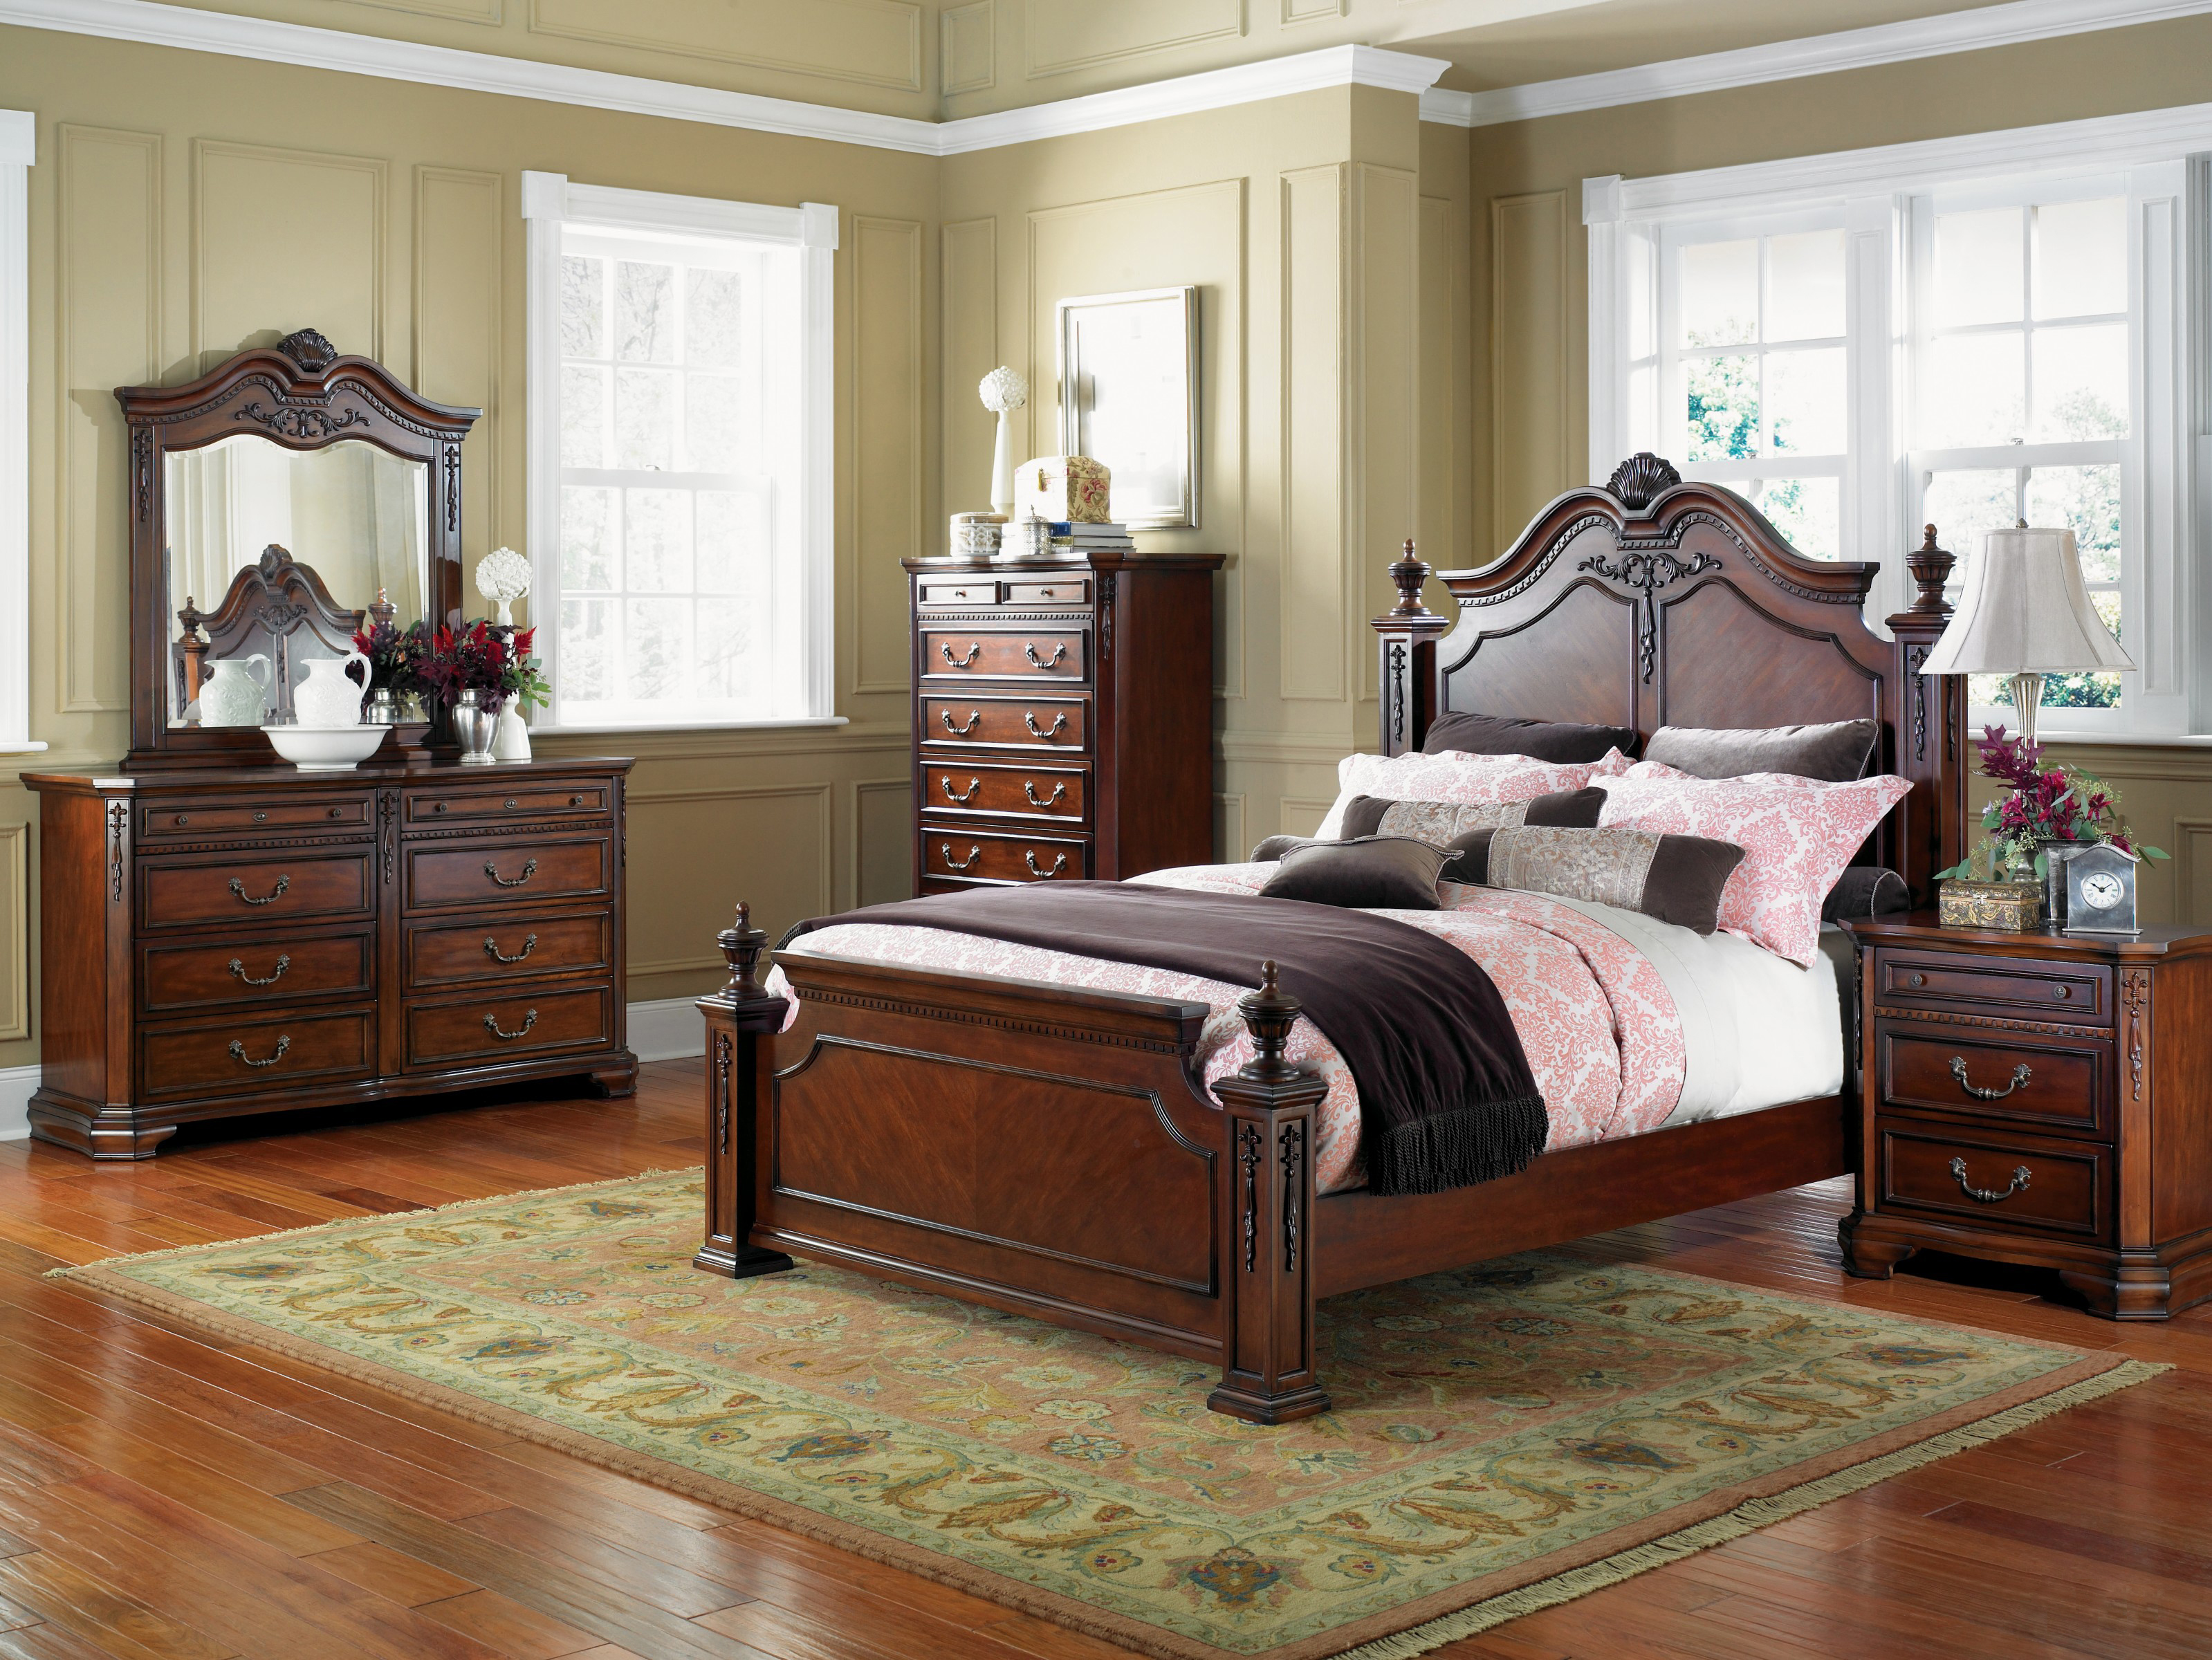 Bedroom furniture for Bedding room furniture